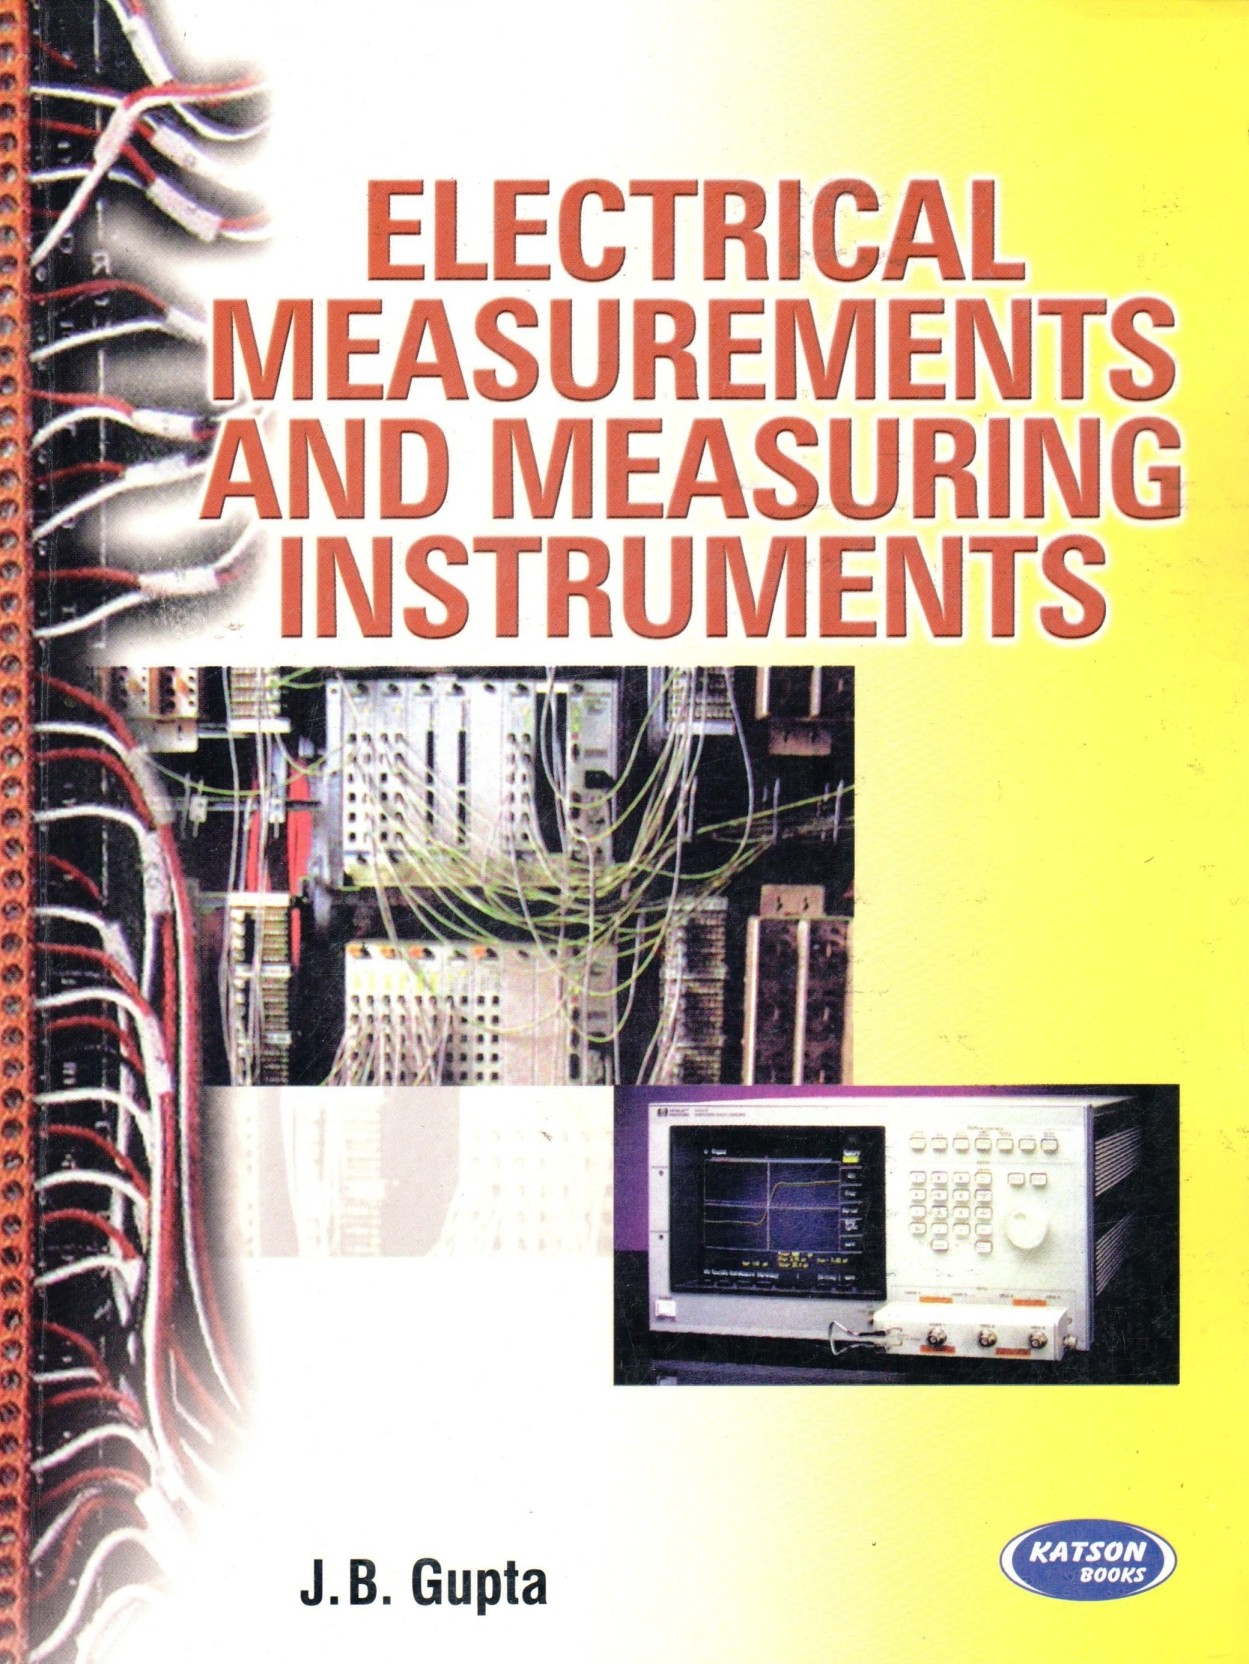 Electrical Measurements And Measuring Instruments 5th Edition Buy Electronic Device Circuit Jb Gupta Add To Cart